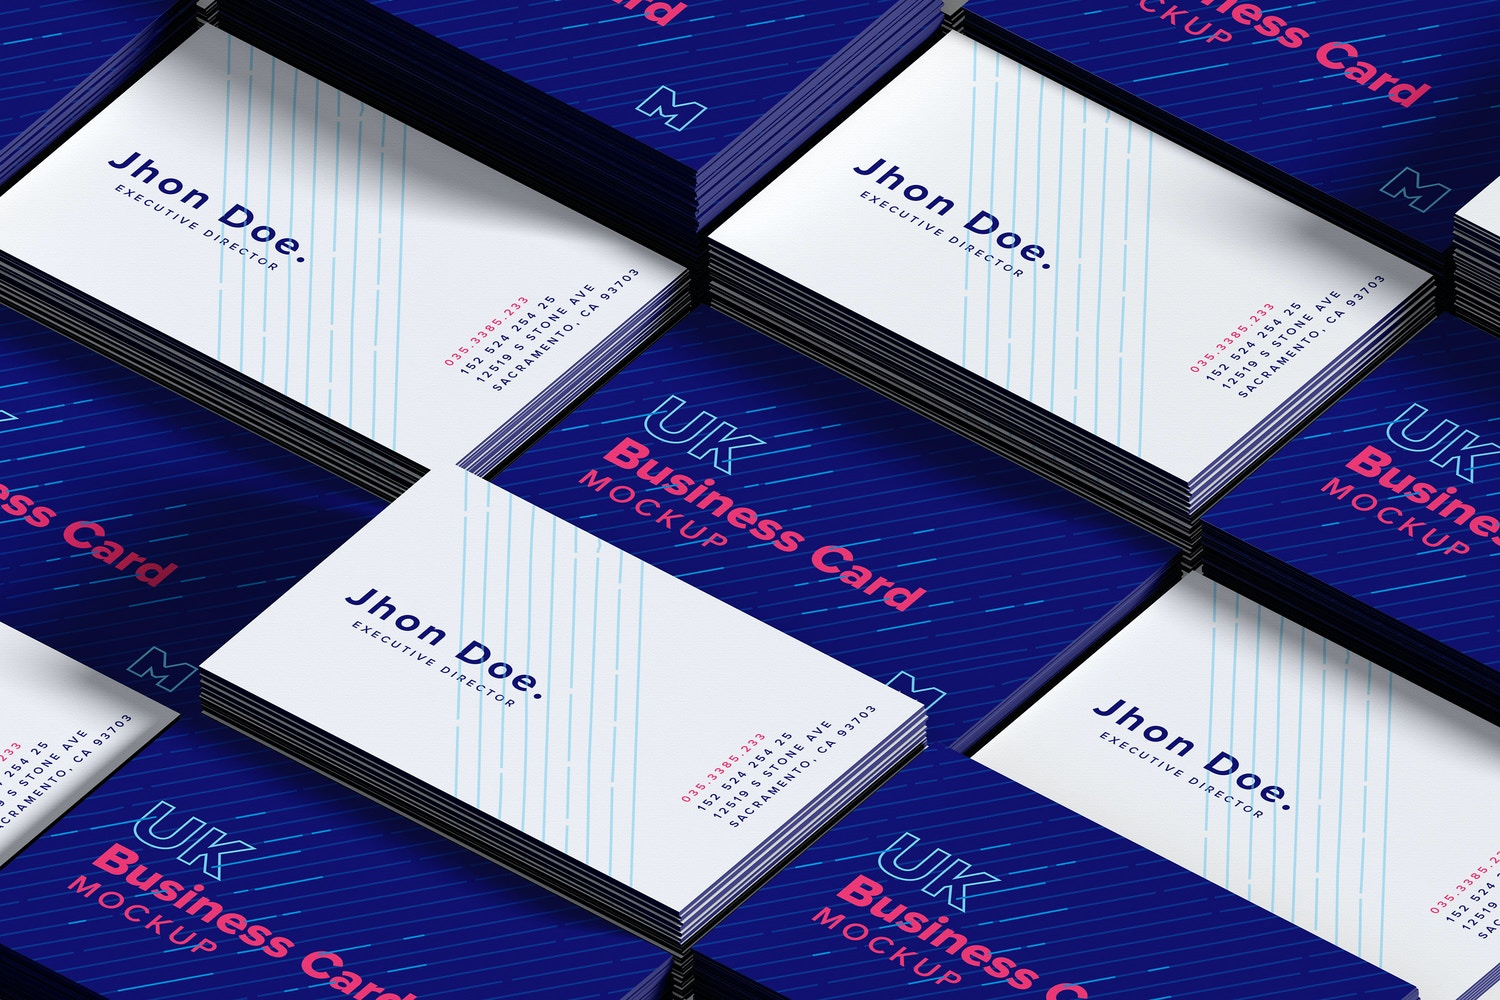 Stacks of UK Business Cards Mockup – Original Mockups